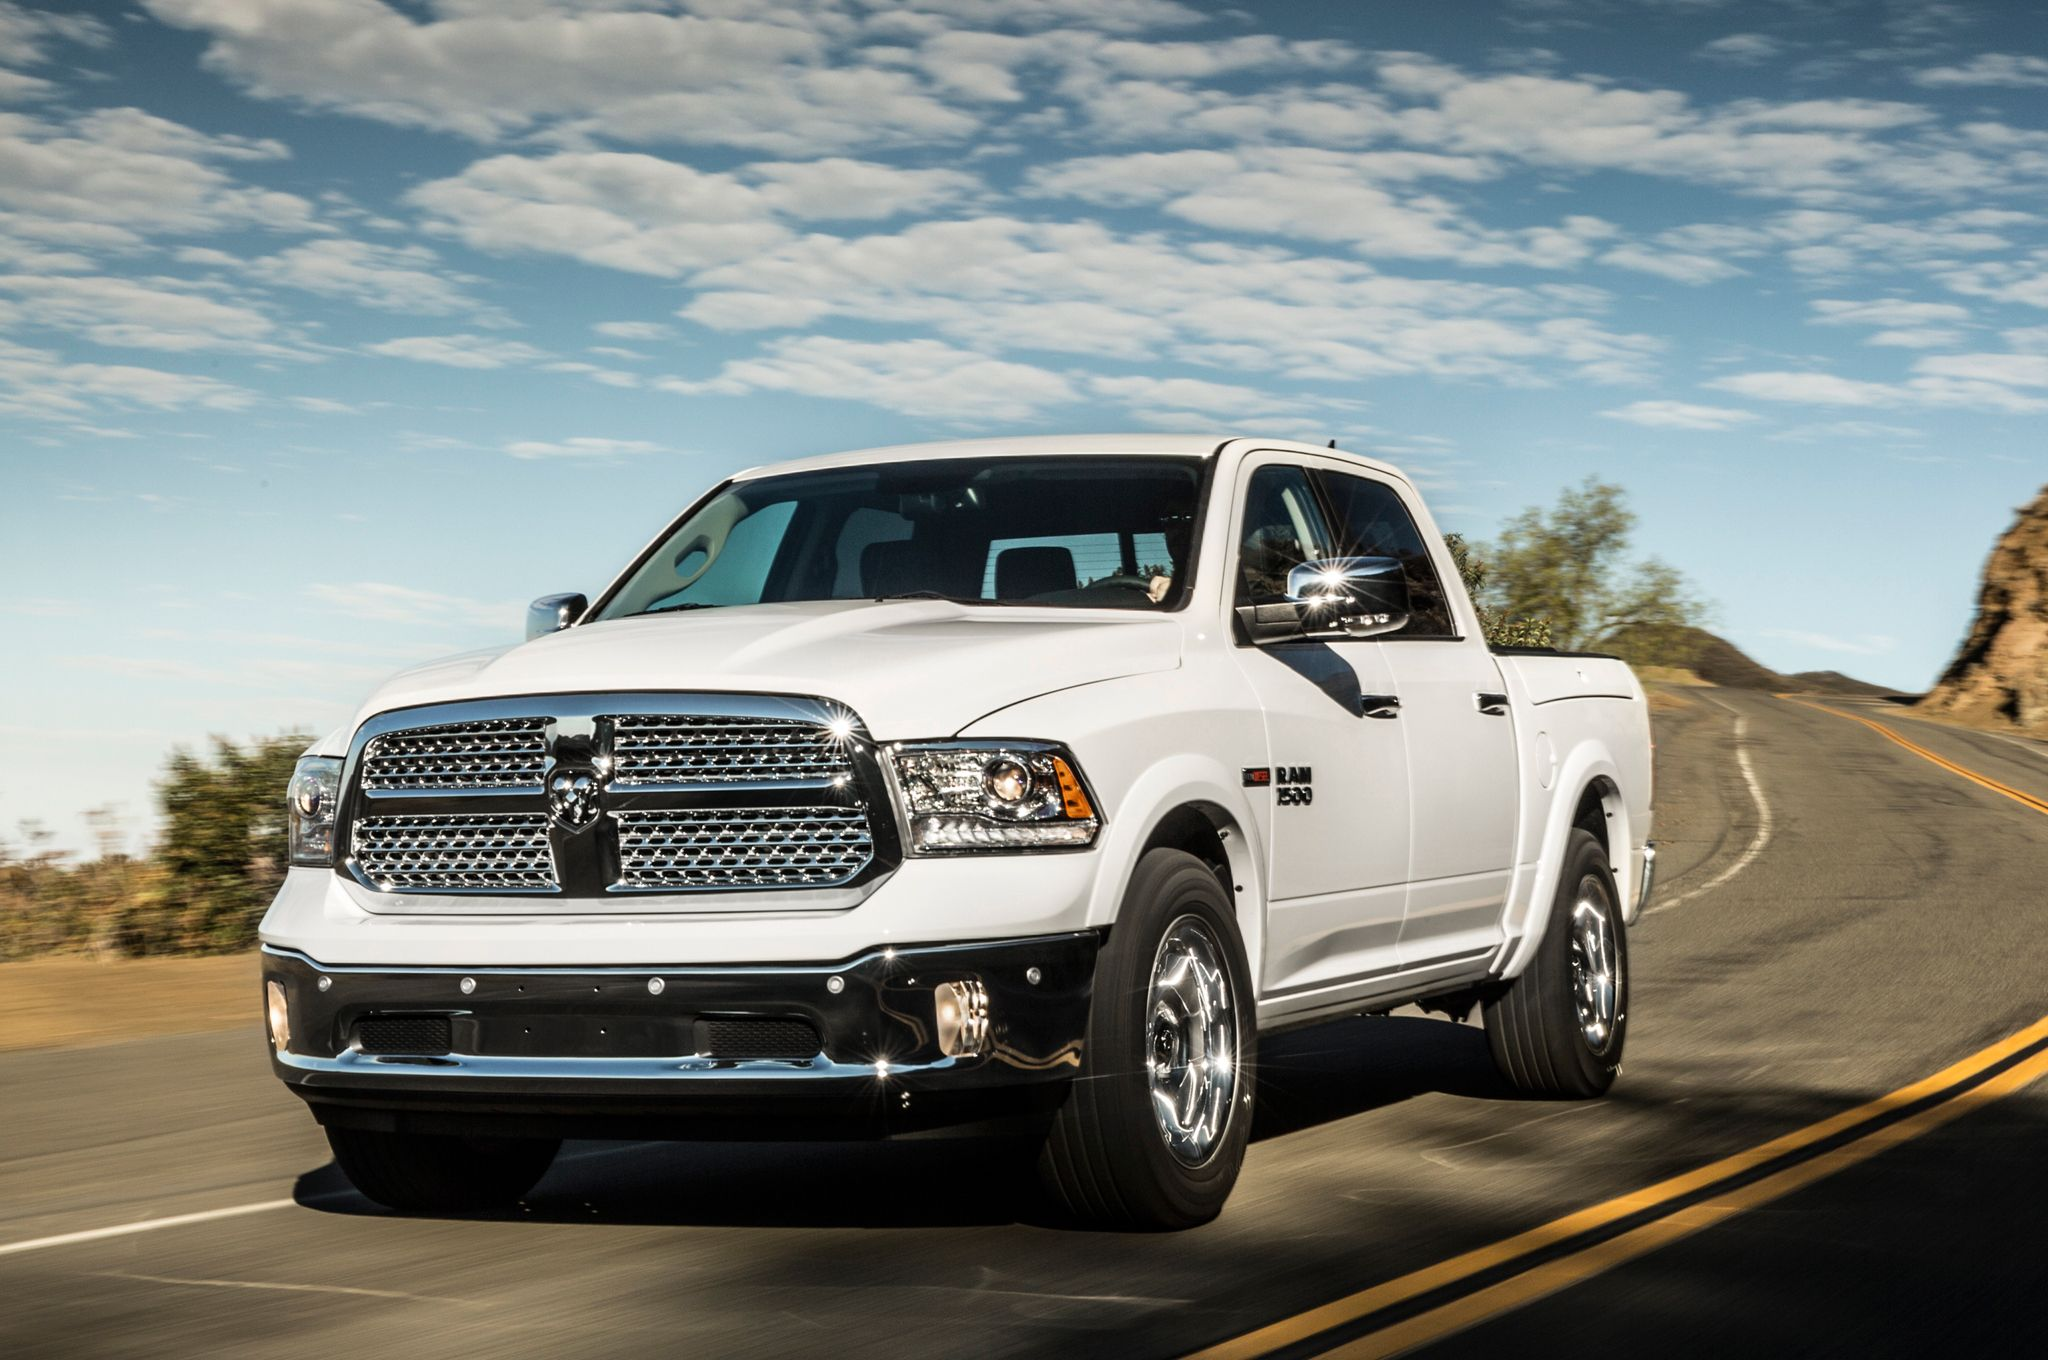 Ram S Turbodiesel Engine Makes Ward S 10 Best Engines List Ram Cars Dodge Ram Ram 1500